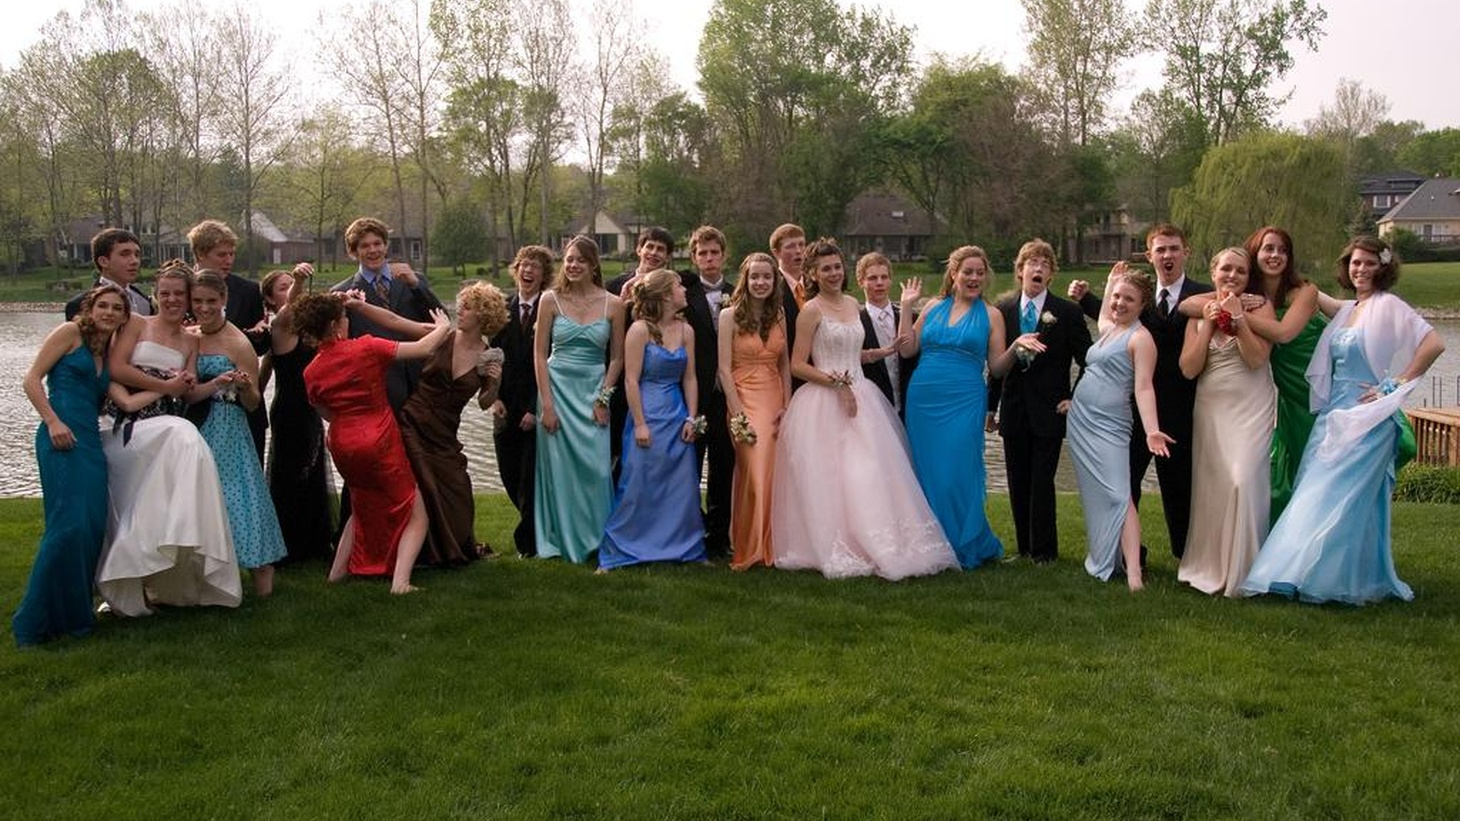 While the seniors danced at Prom Night 2001 in Hoisington, Kansas—a town of about 3,000—a tornado hit the town, destroying about a third of it...